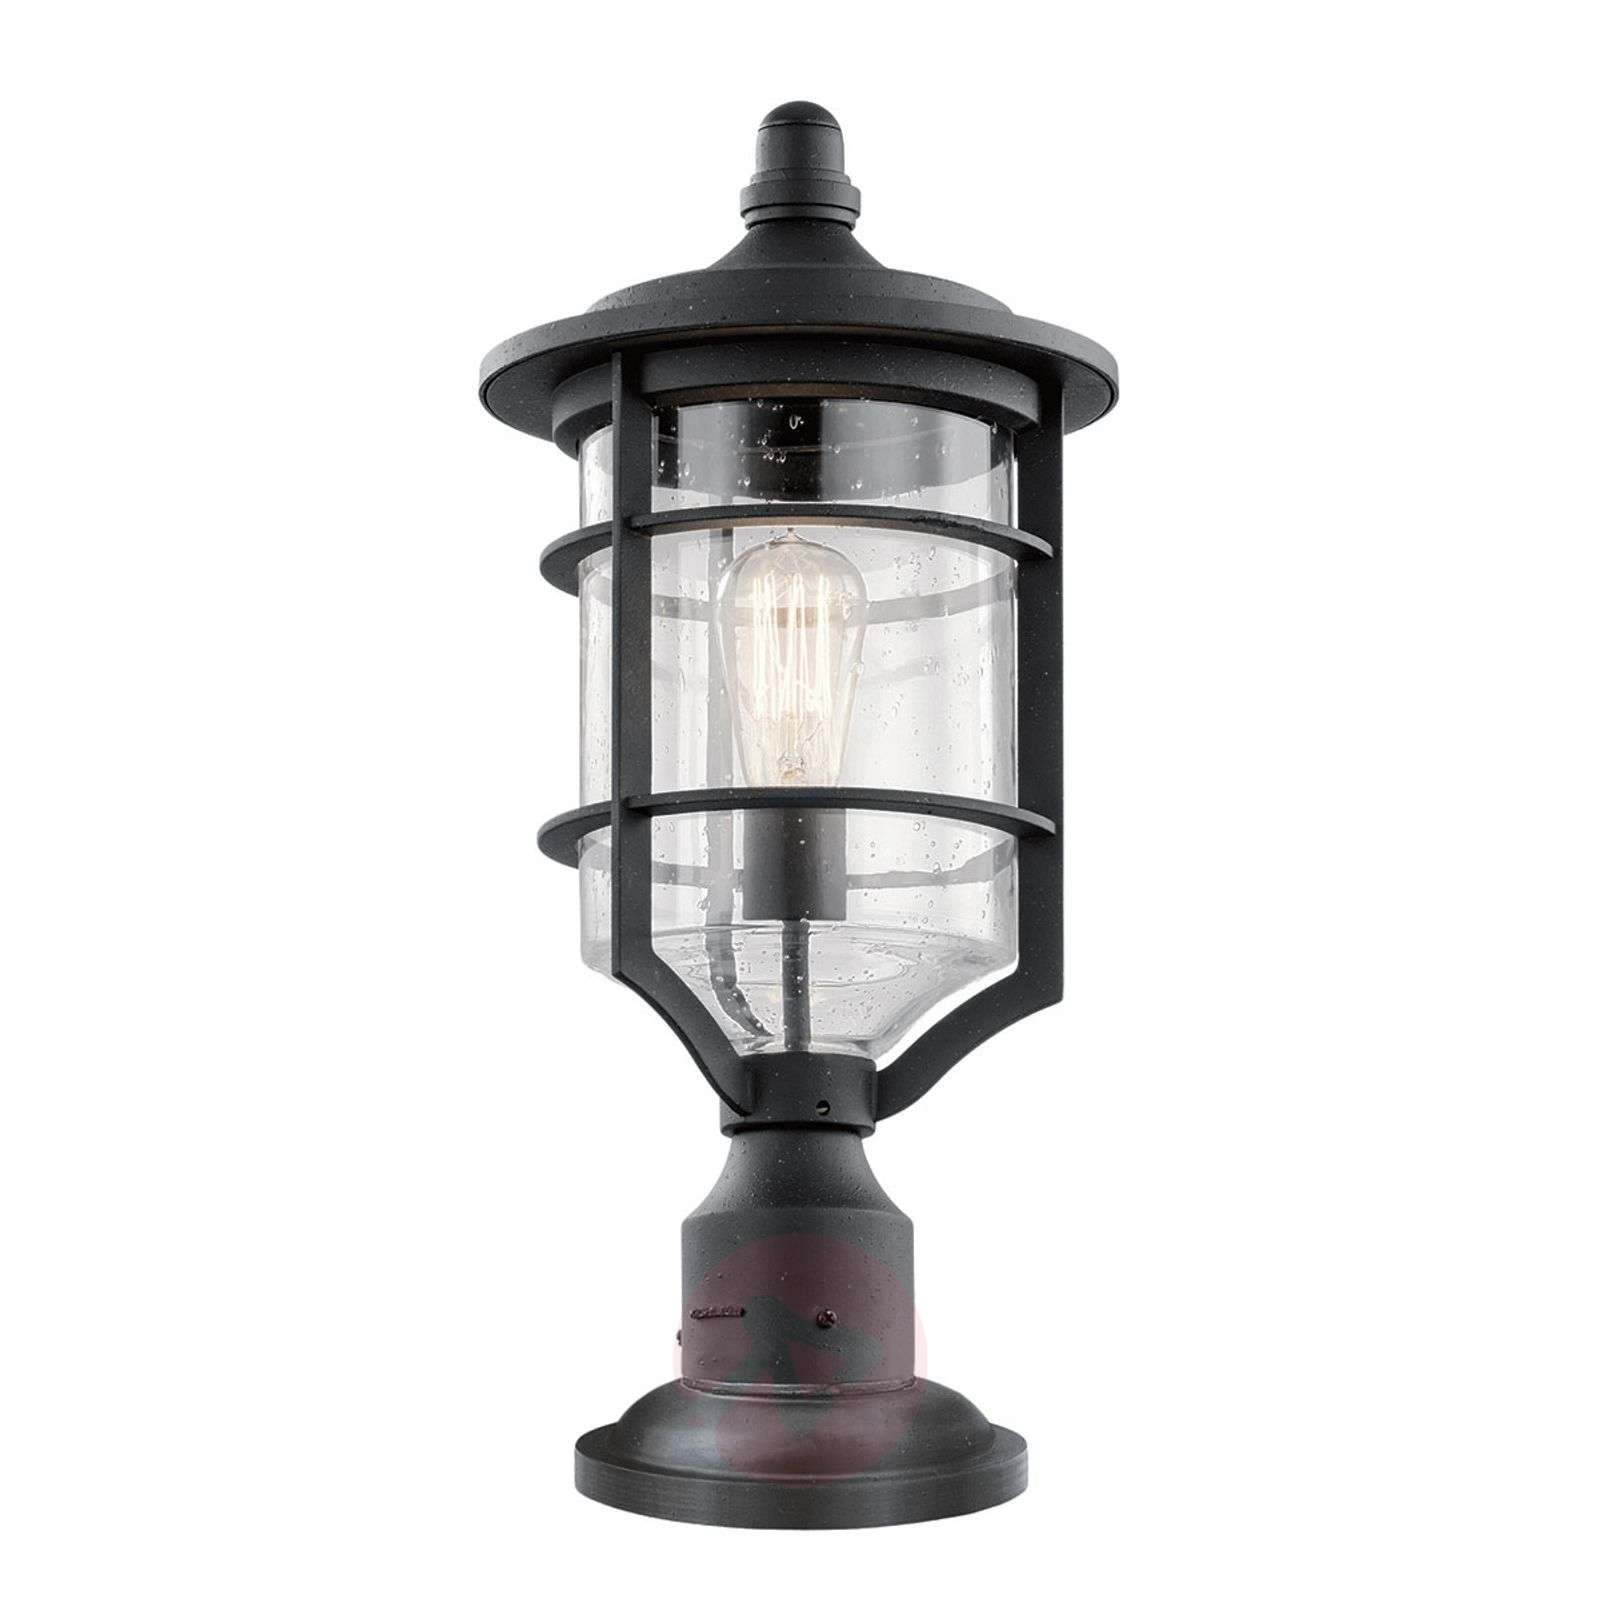 Lantern pillar light Royal Marine-3048938-01